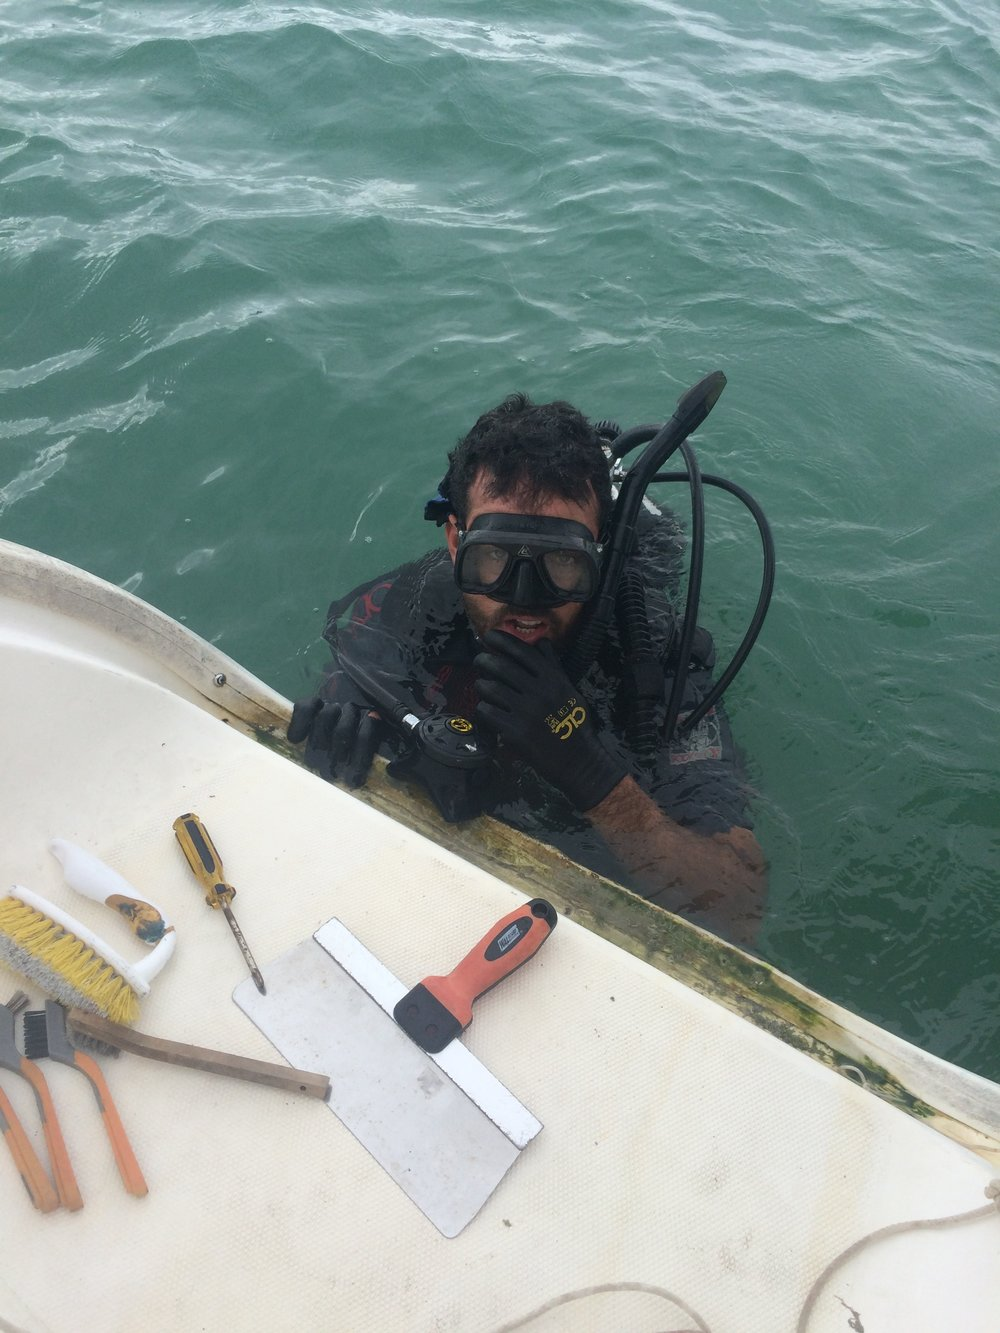 Maikel diving to fix the prop.